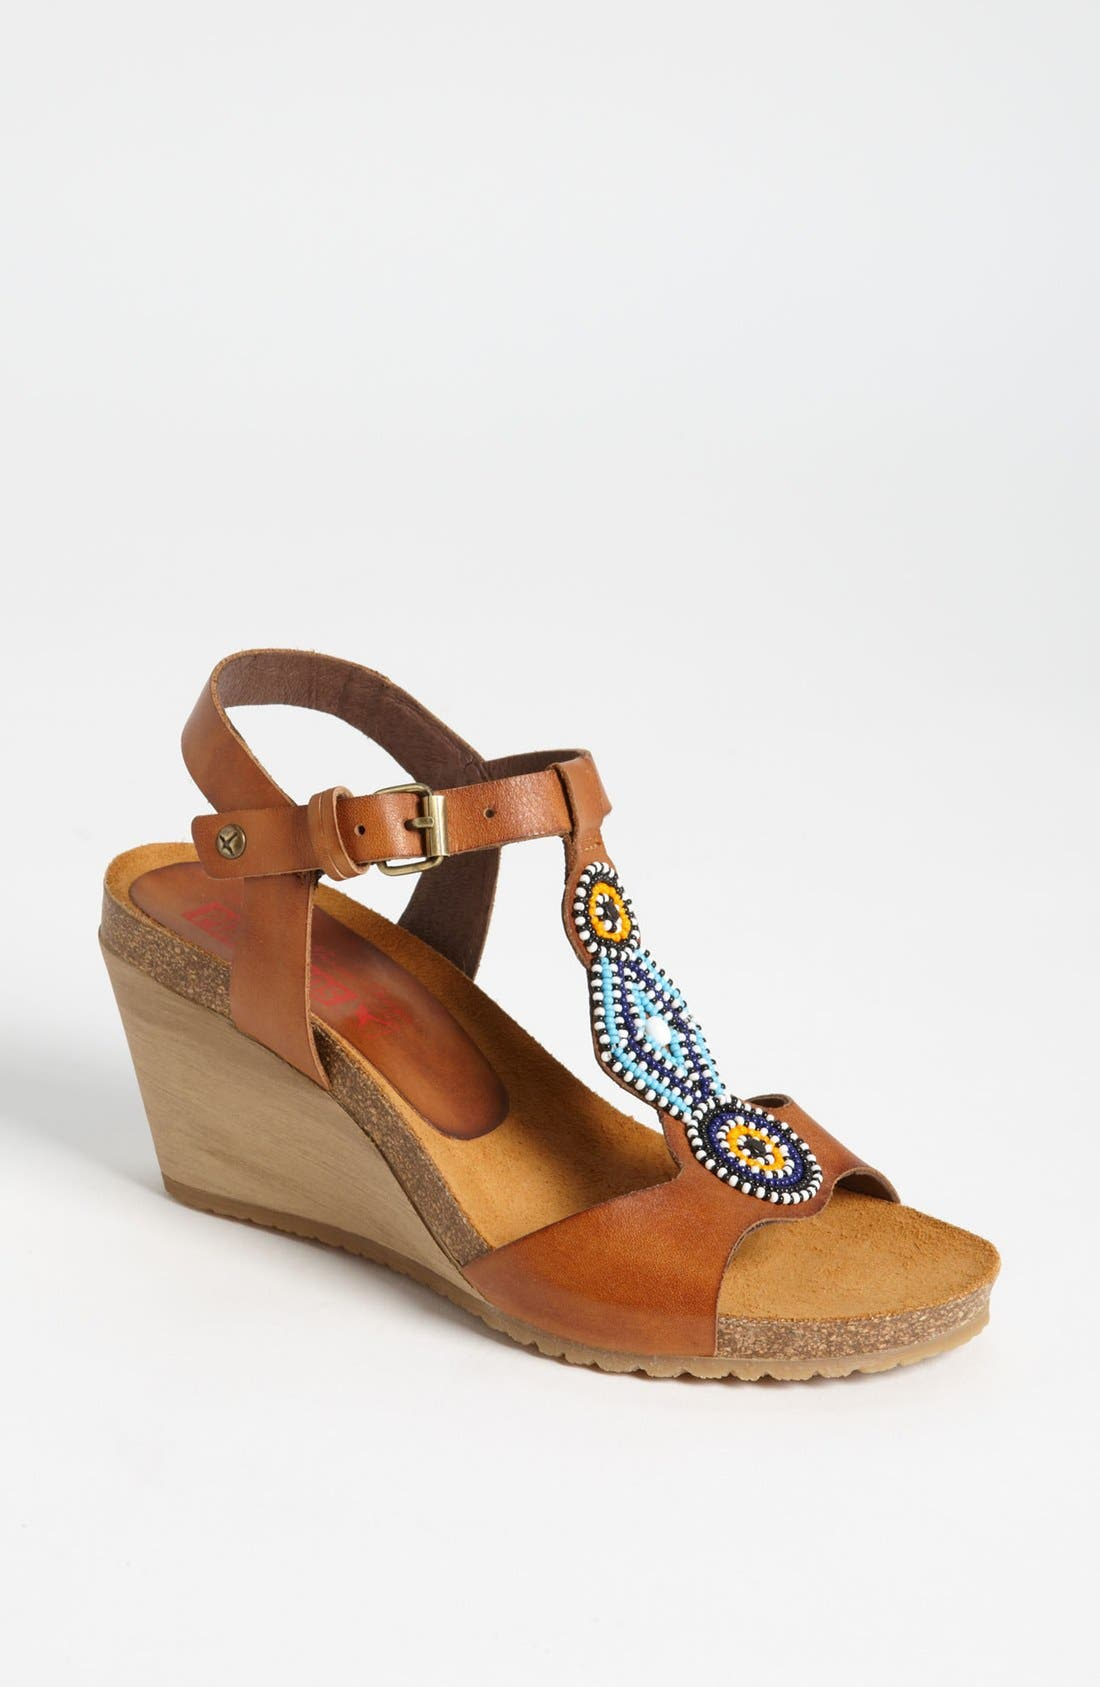 Alternate Image 1 Selected - PIKOLINOS 'Benissa Maasai 1' Sandal